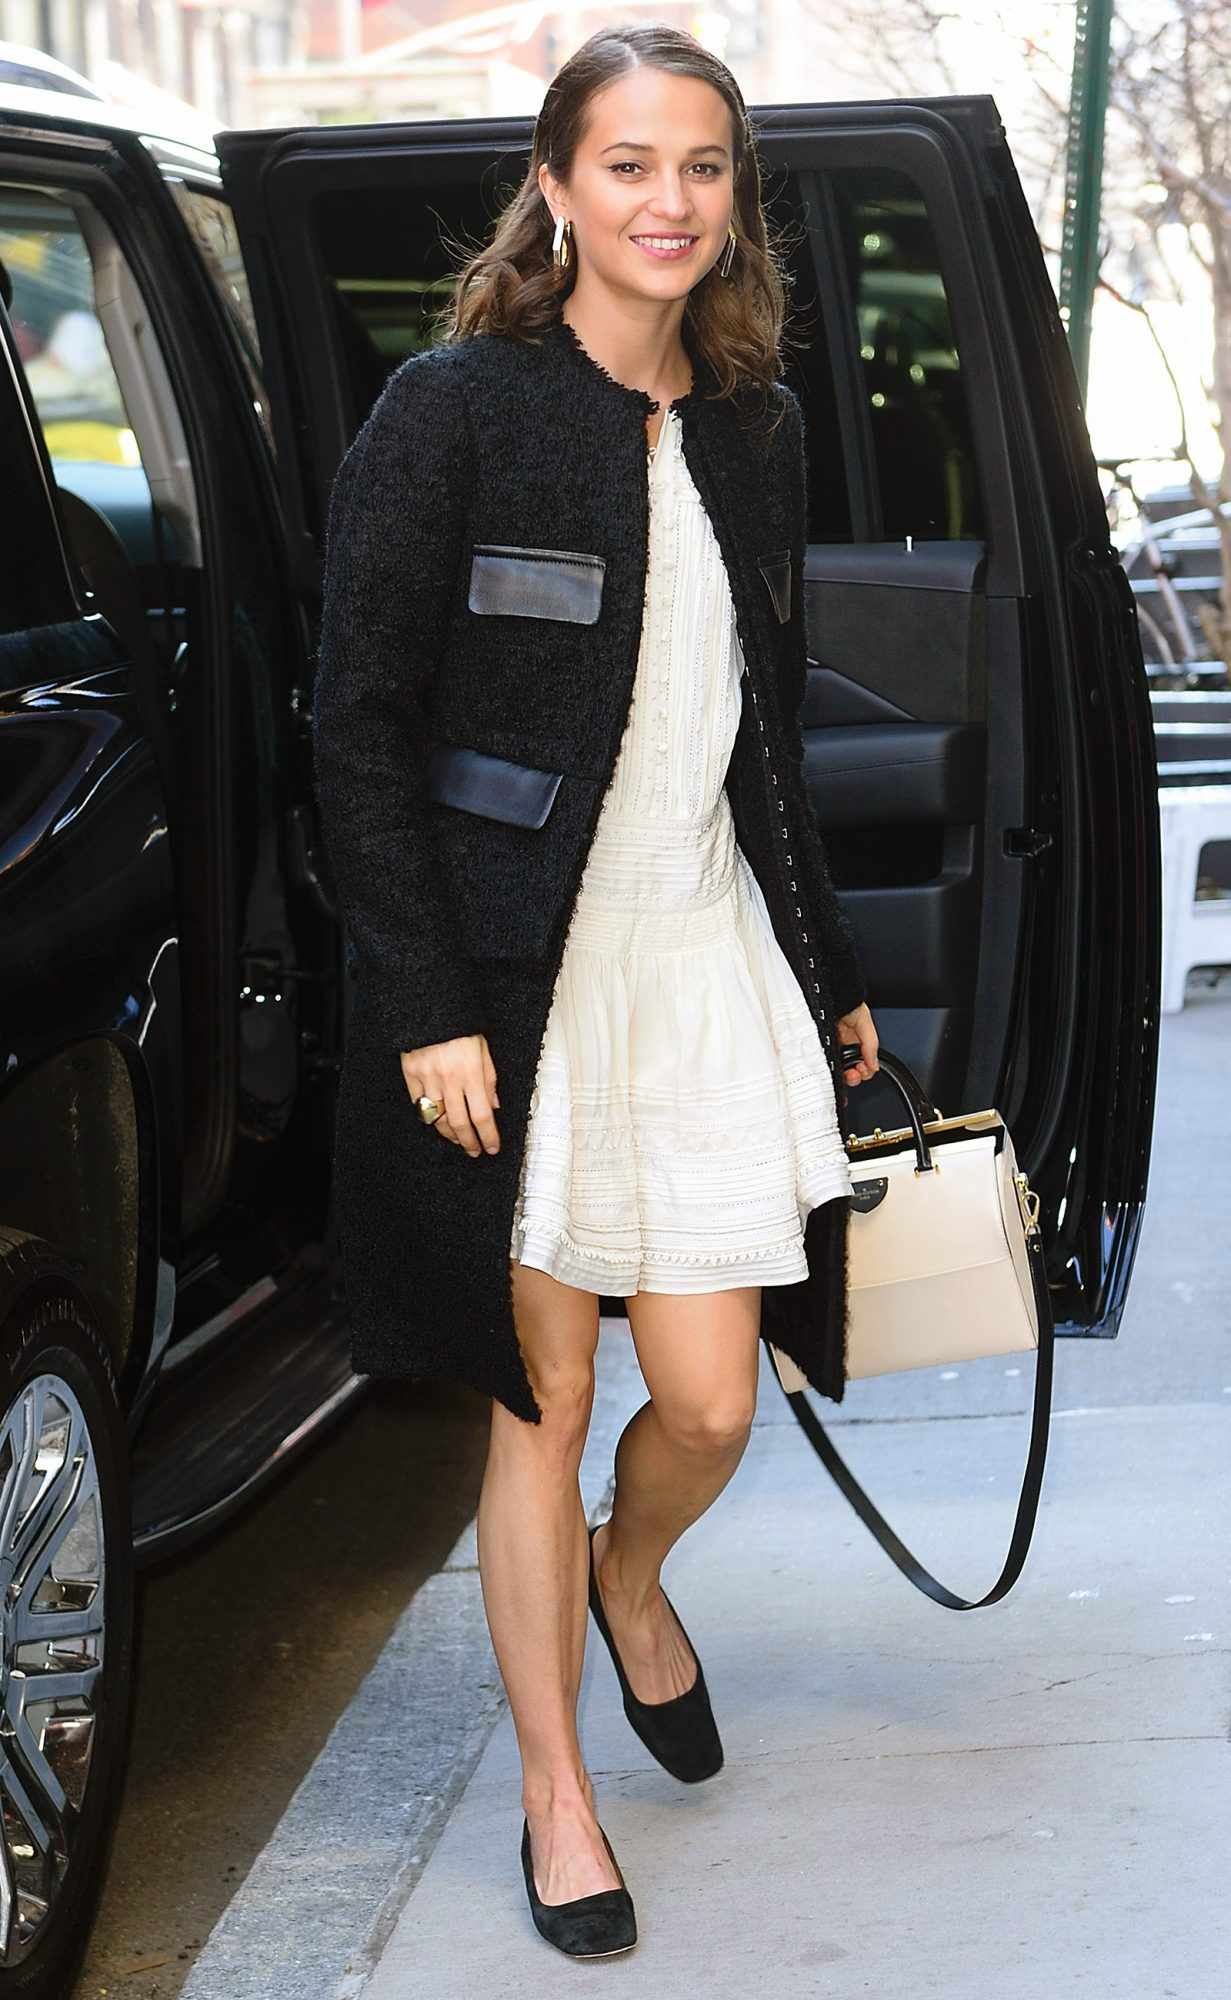 Alicia Vikander arrives at AOL Build Series in NYC.